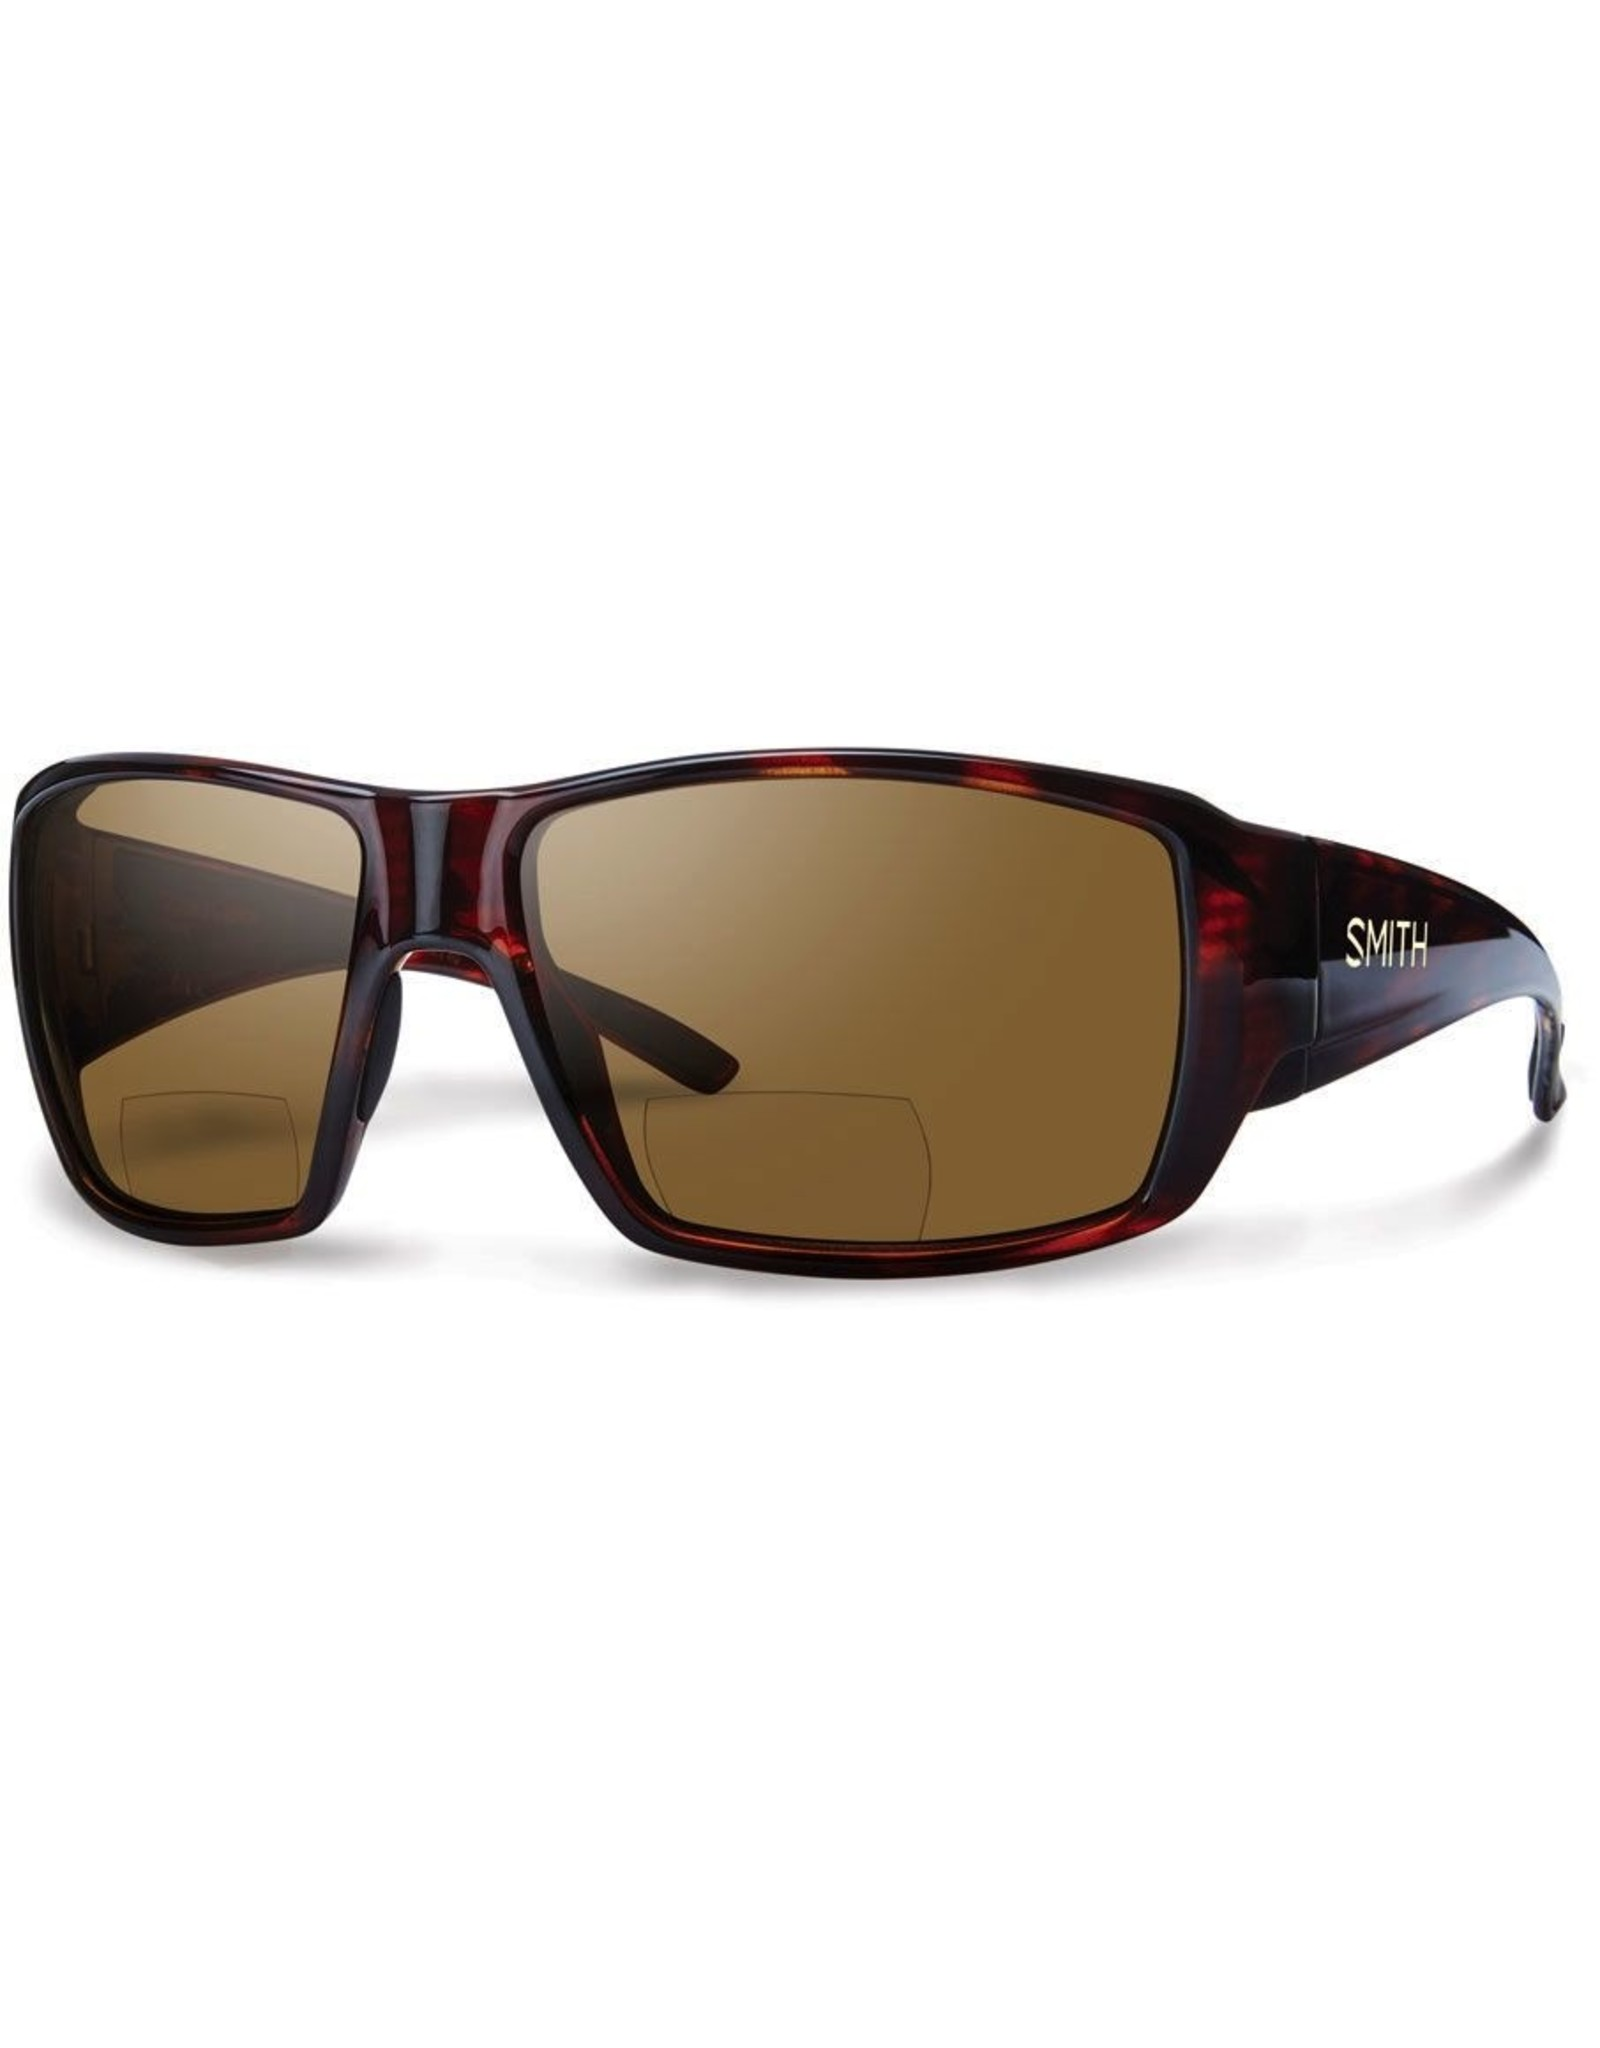 Smith SMITH Guide's Choice (Polar Brown 2.50 Bifocal) Matte Havana Frame